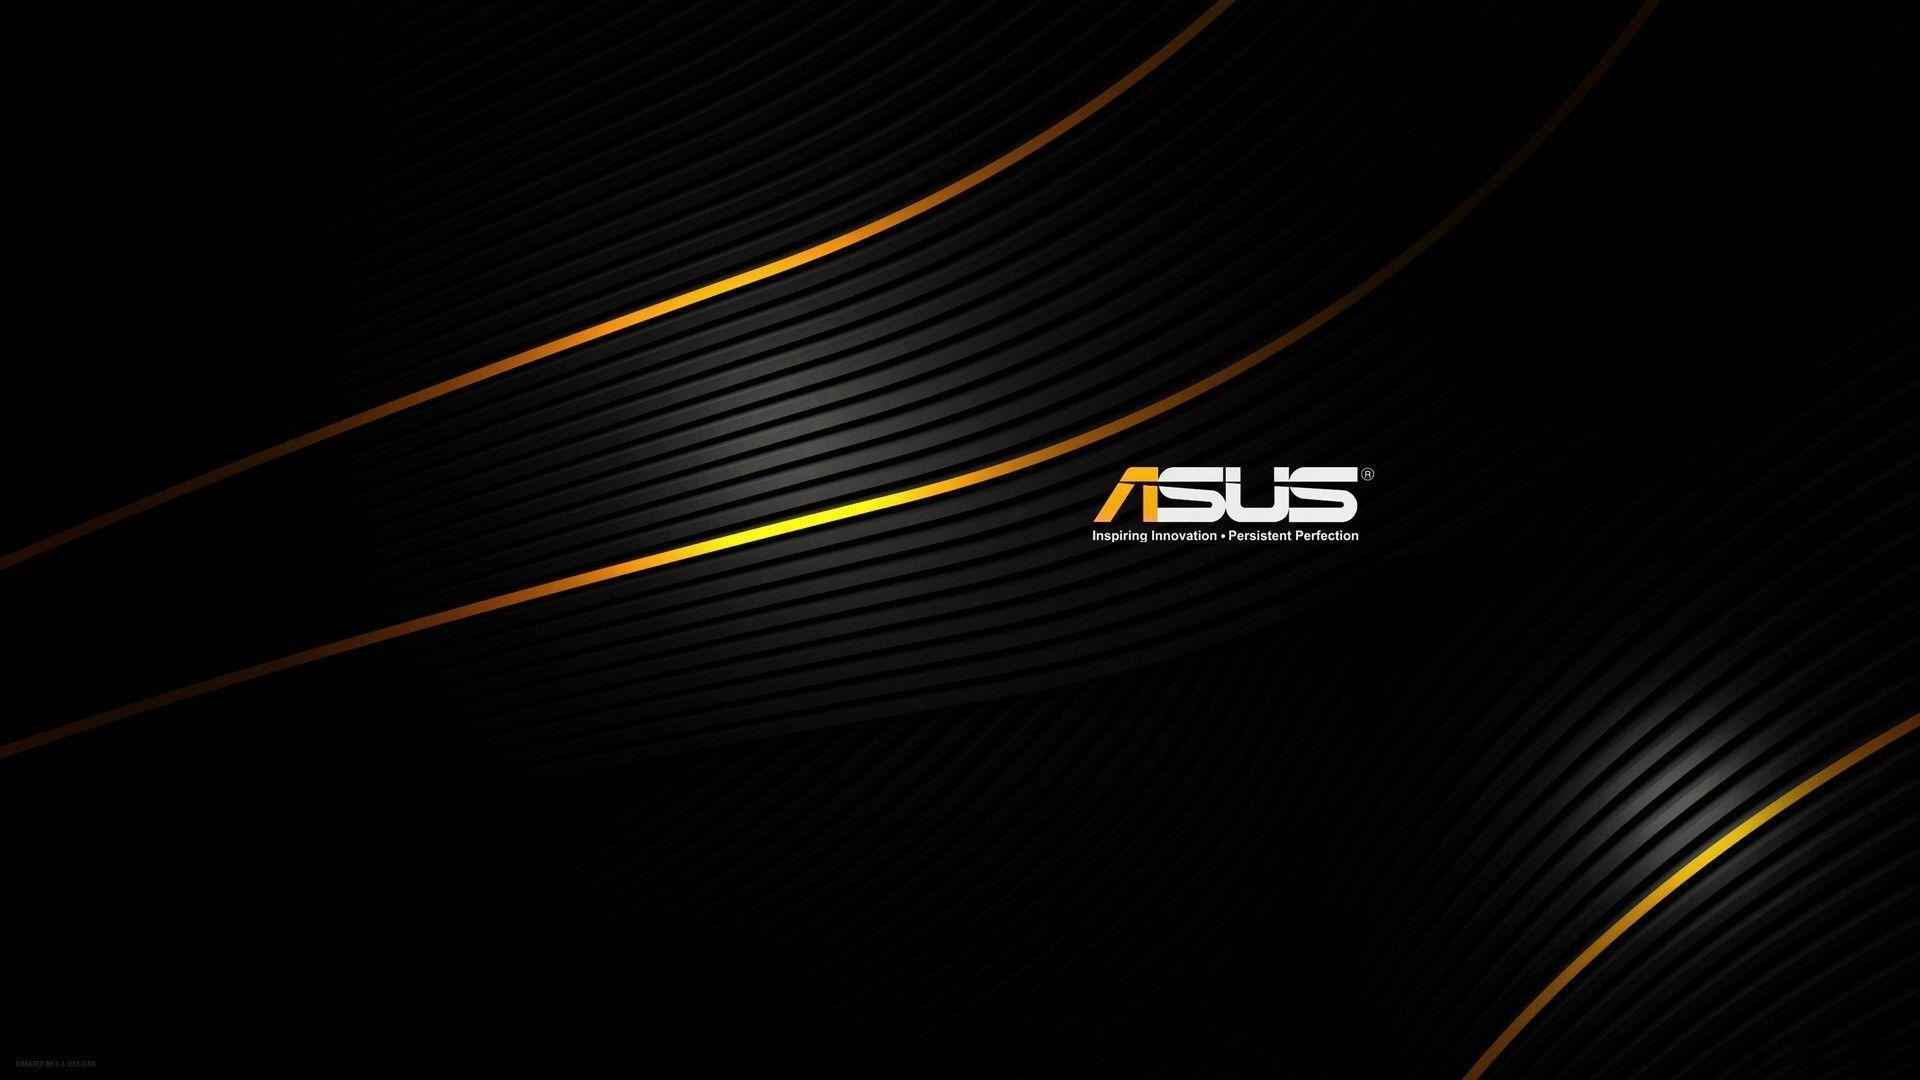 asus wallpapers hd - wallpaper cave